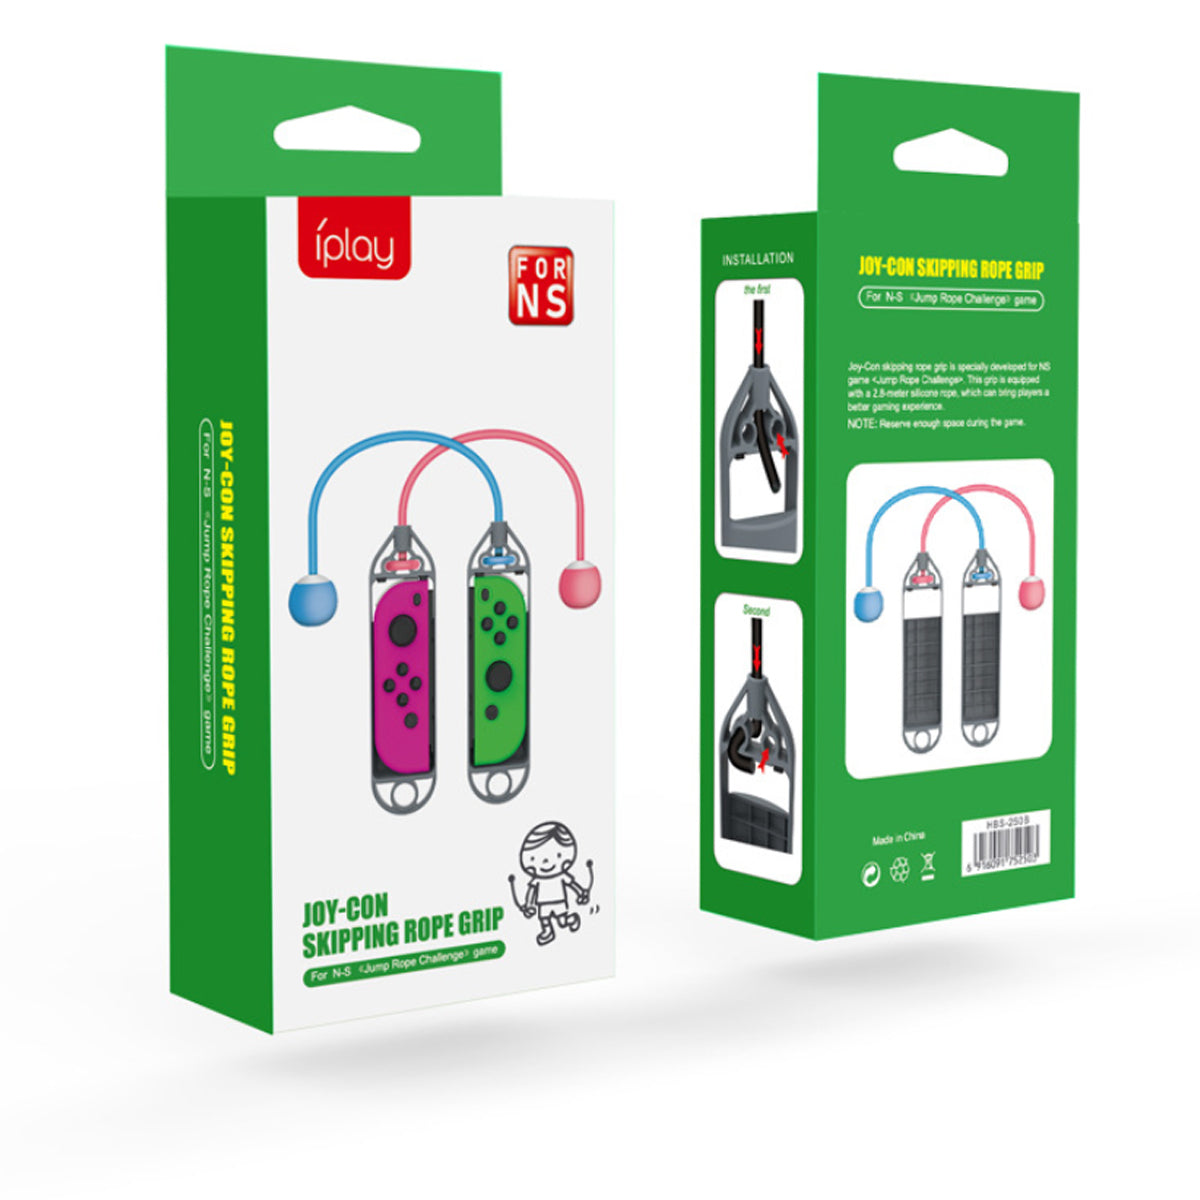 shopify-Jump With Joy Switch Game Skipping Rope Accessory-5